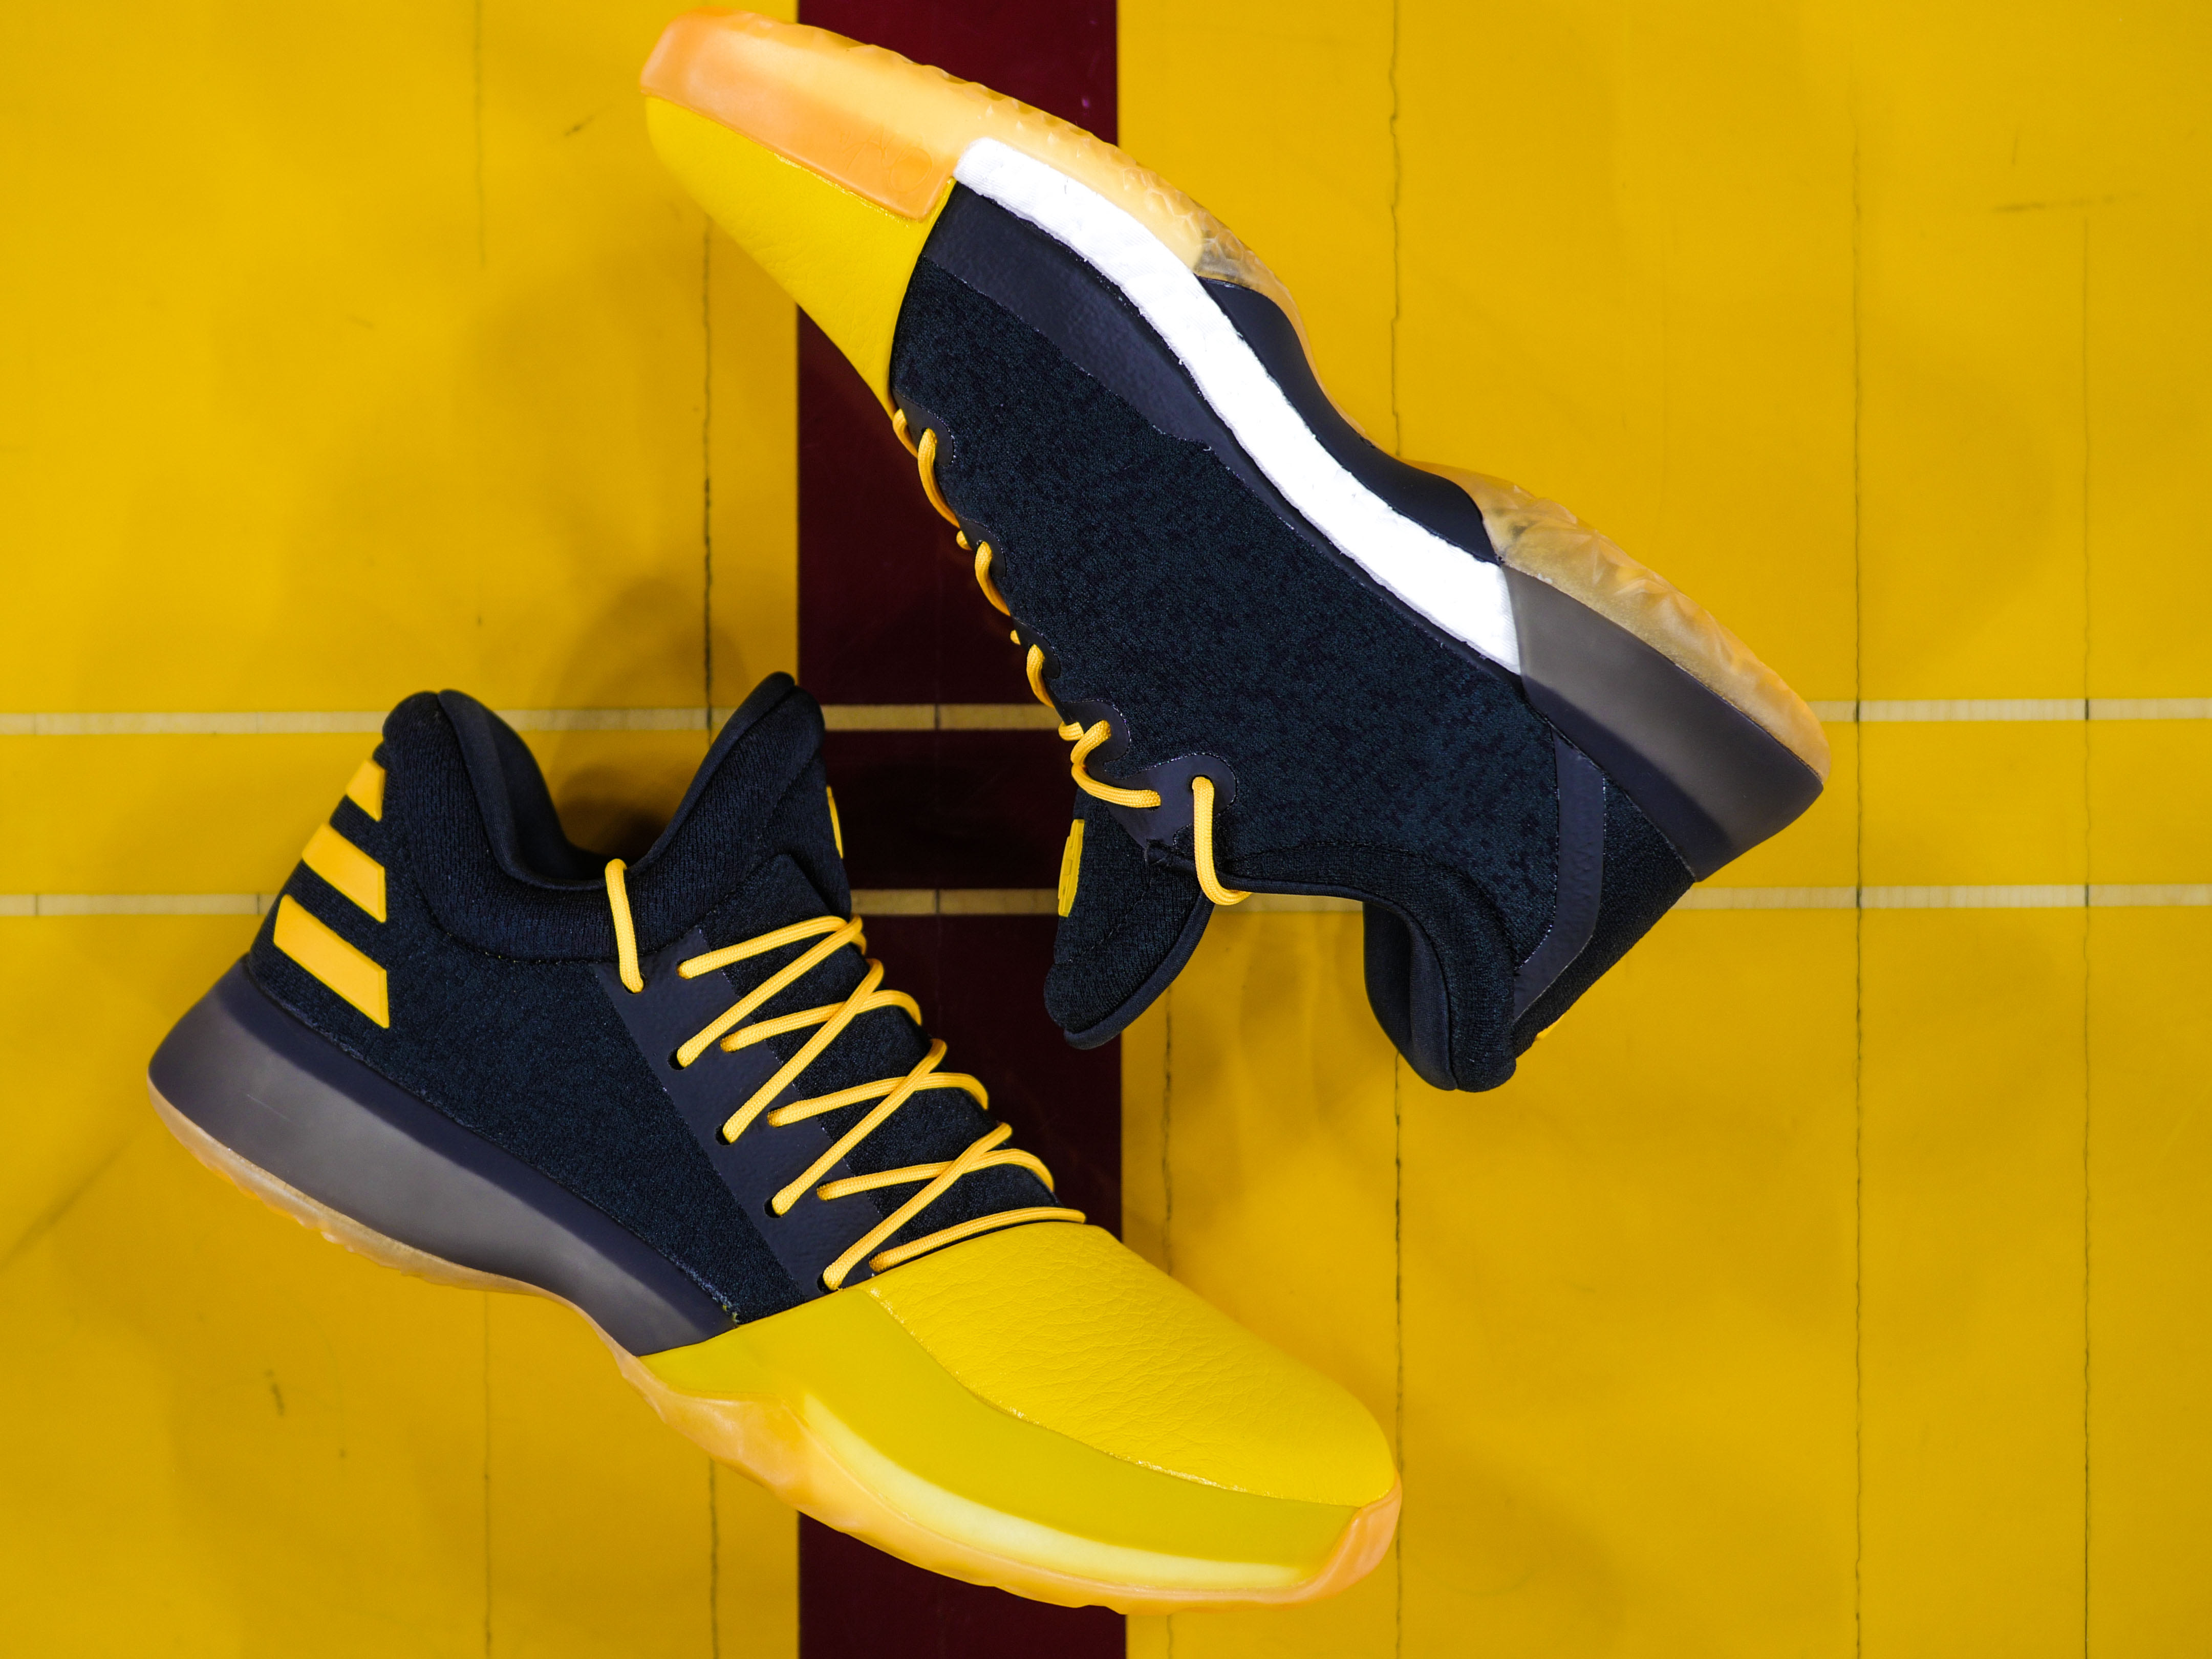 d39cc402cffb ... greece a new james harden vol.1 colorway pays tribute to arizona state  7a188 3c3f9